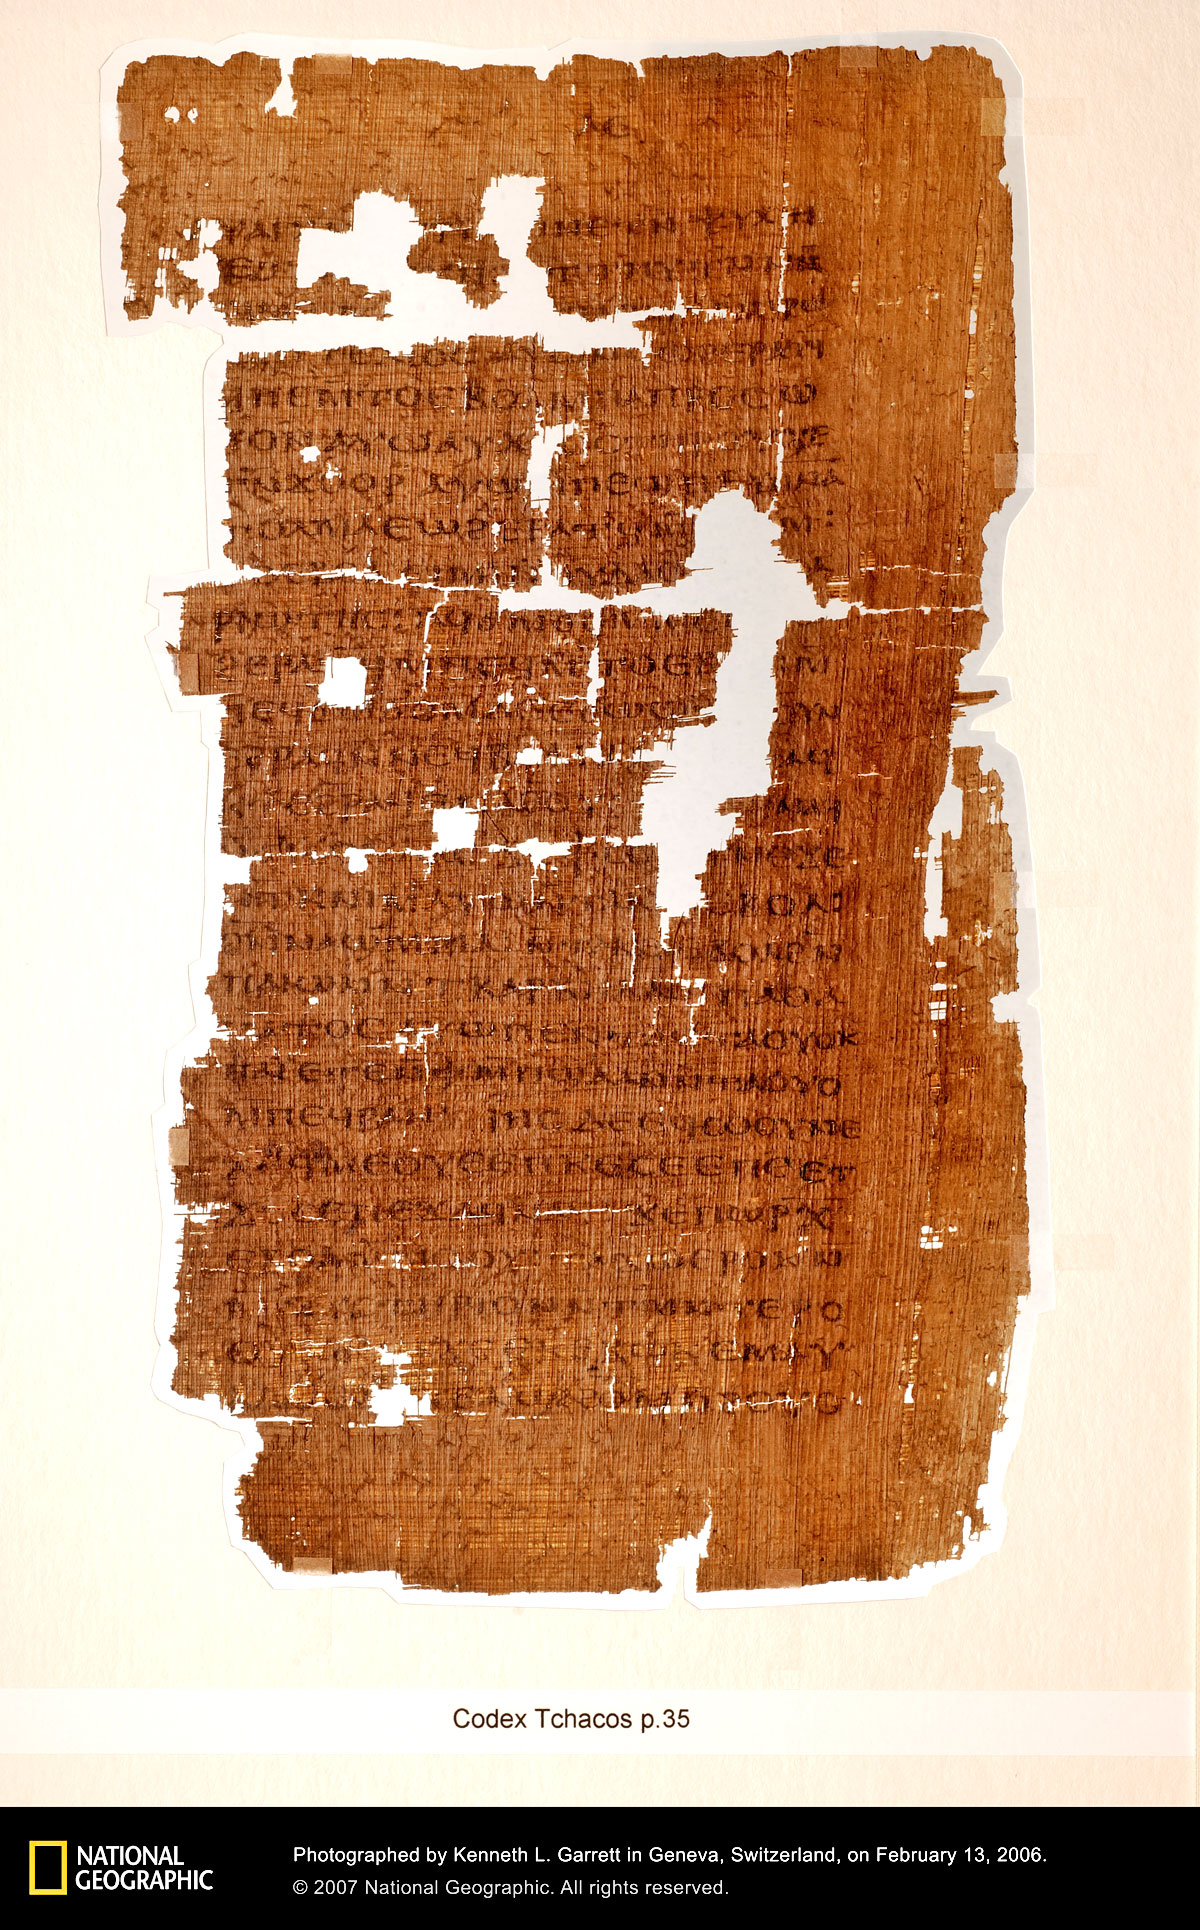 The Lost Gospel Of Judas From The Codex Tchacos